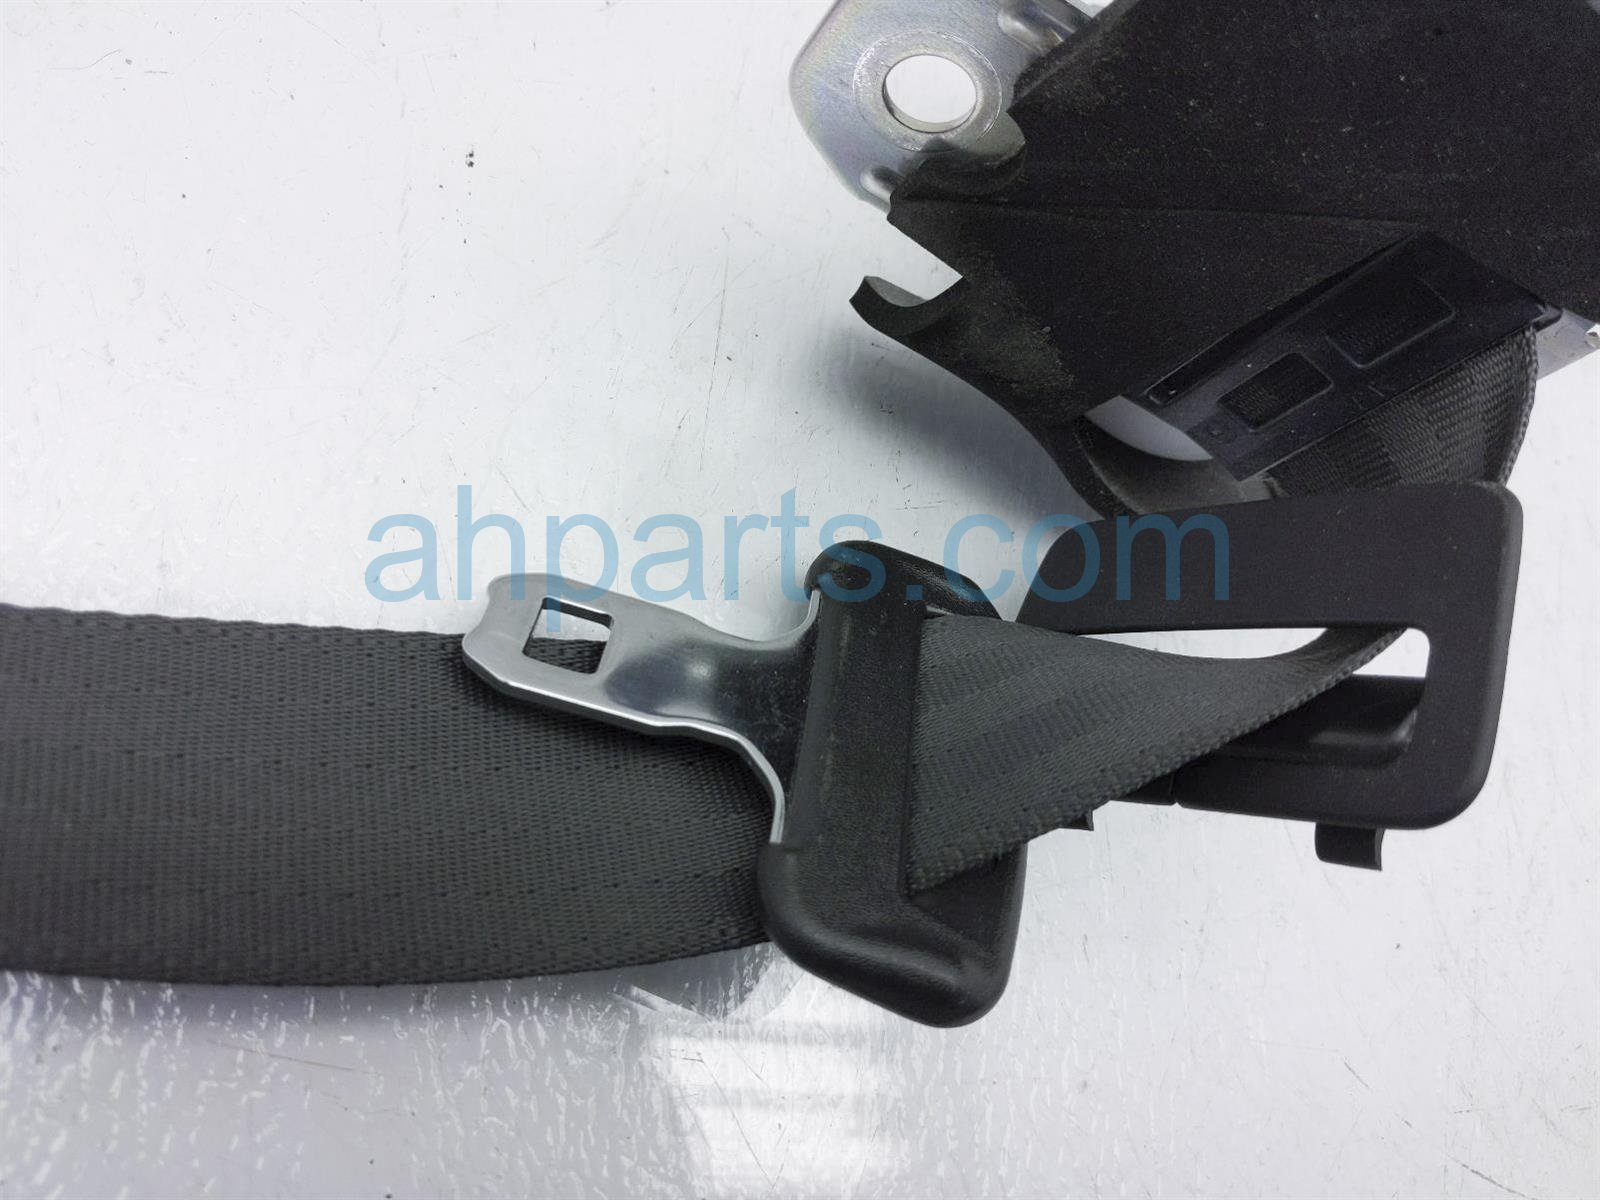 2011 Infiniti G37 Rear 2nd Row Passenger Seat Belt   Black 88844 JK70B Replacement